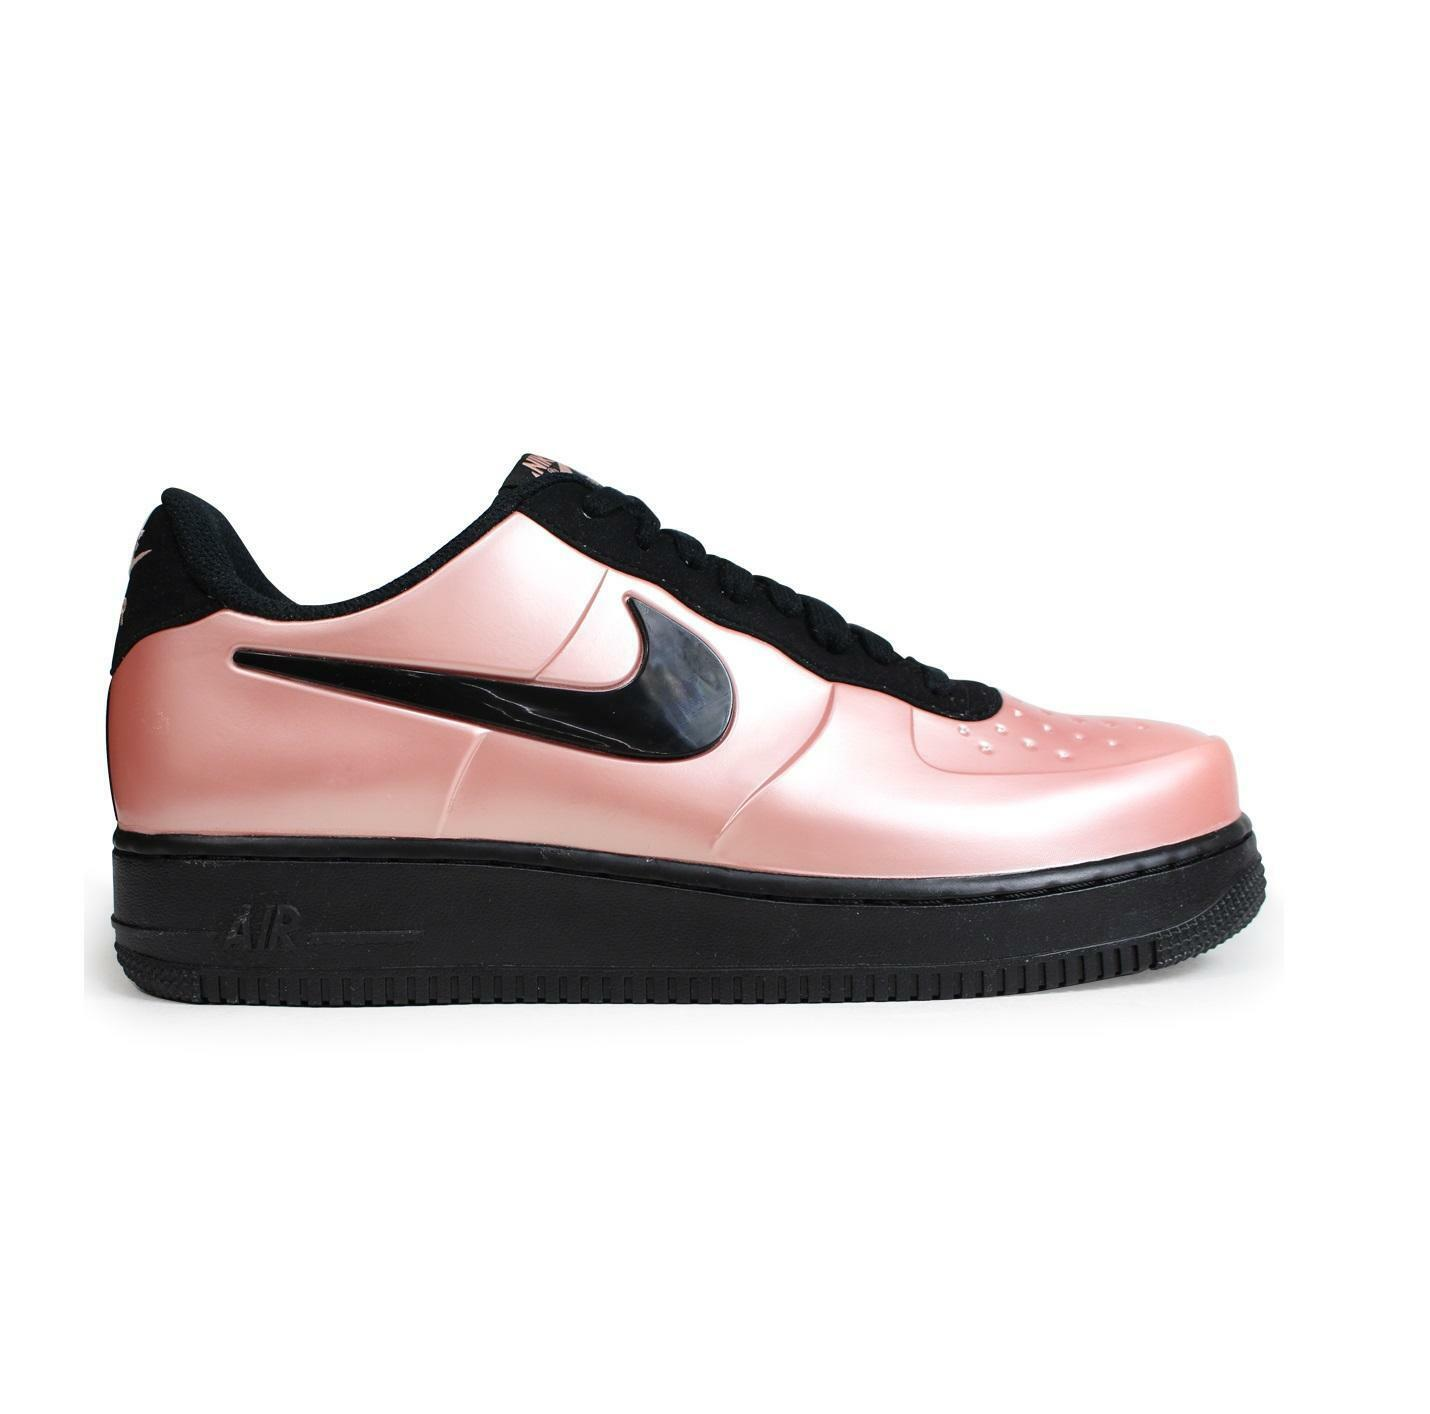 Mens NIKE AF1 FOAMPOSITE PRO CUP Coral Stardust Trainers AJ3664 600